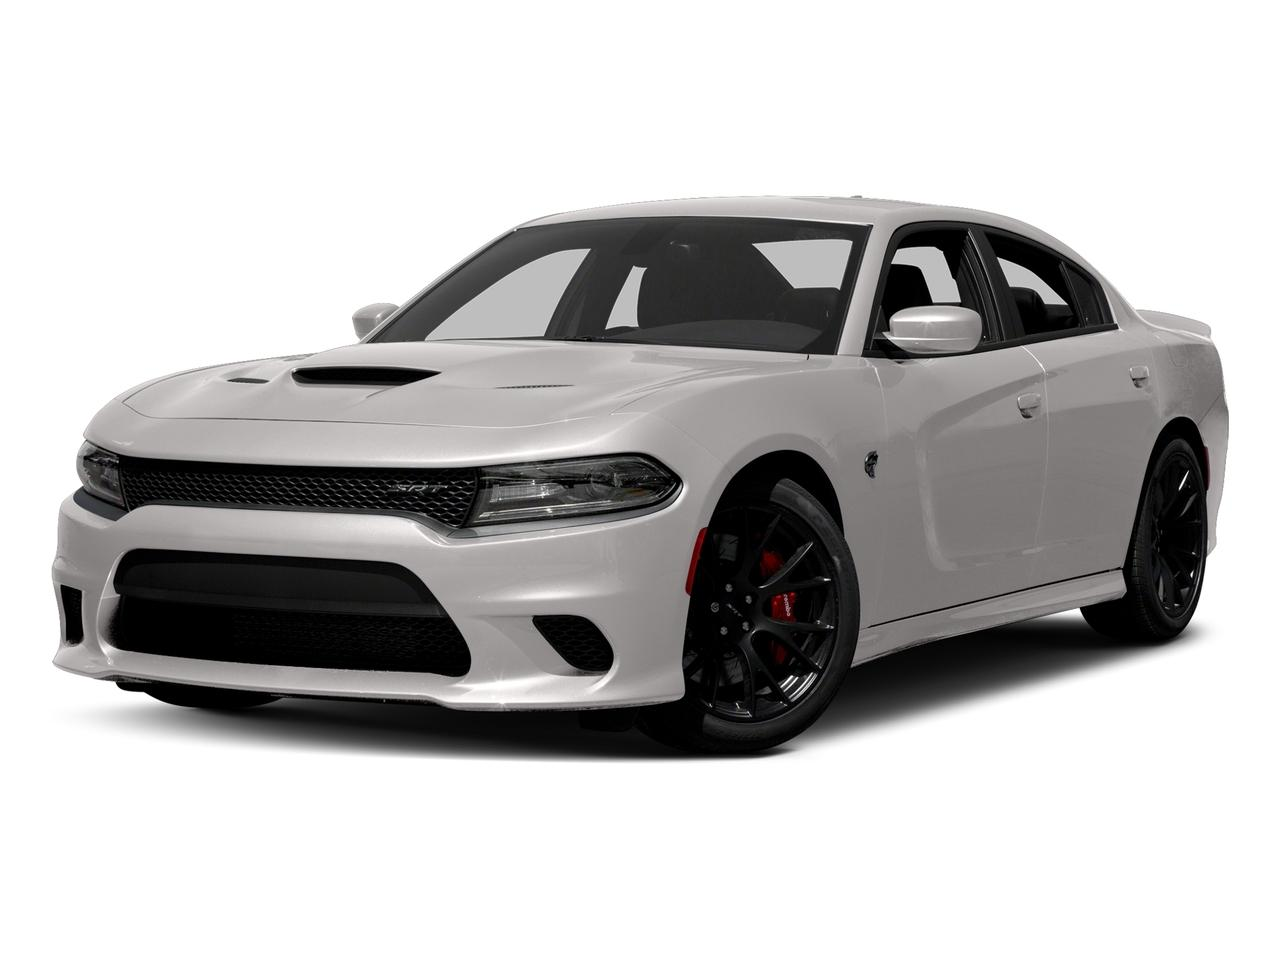 2017 Dodge Charger Vehicle Photo in Fort Worth, TX 76116